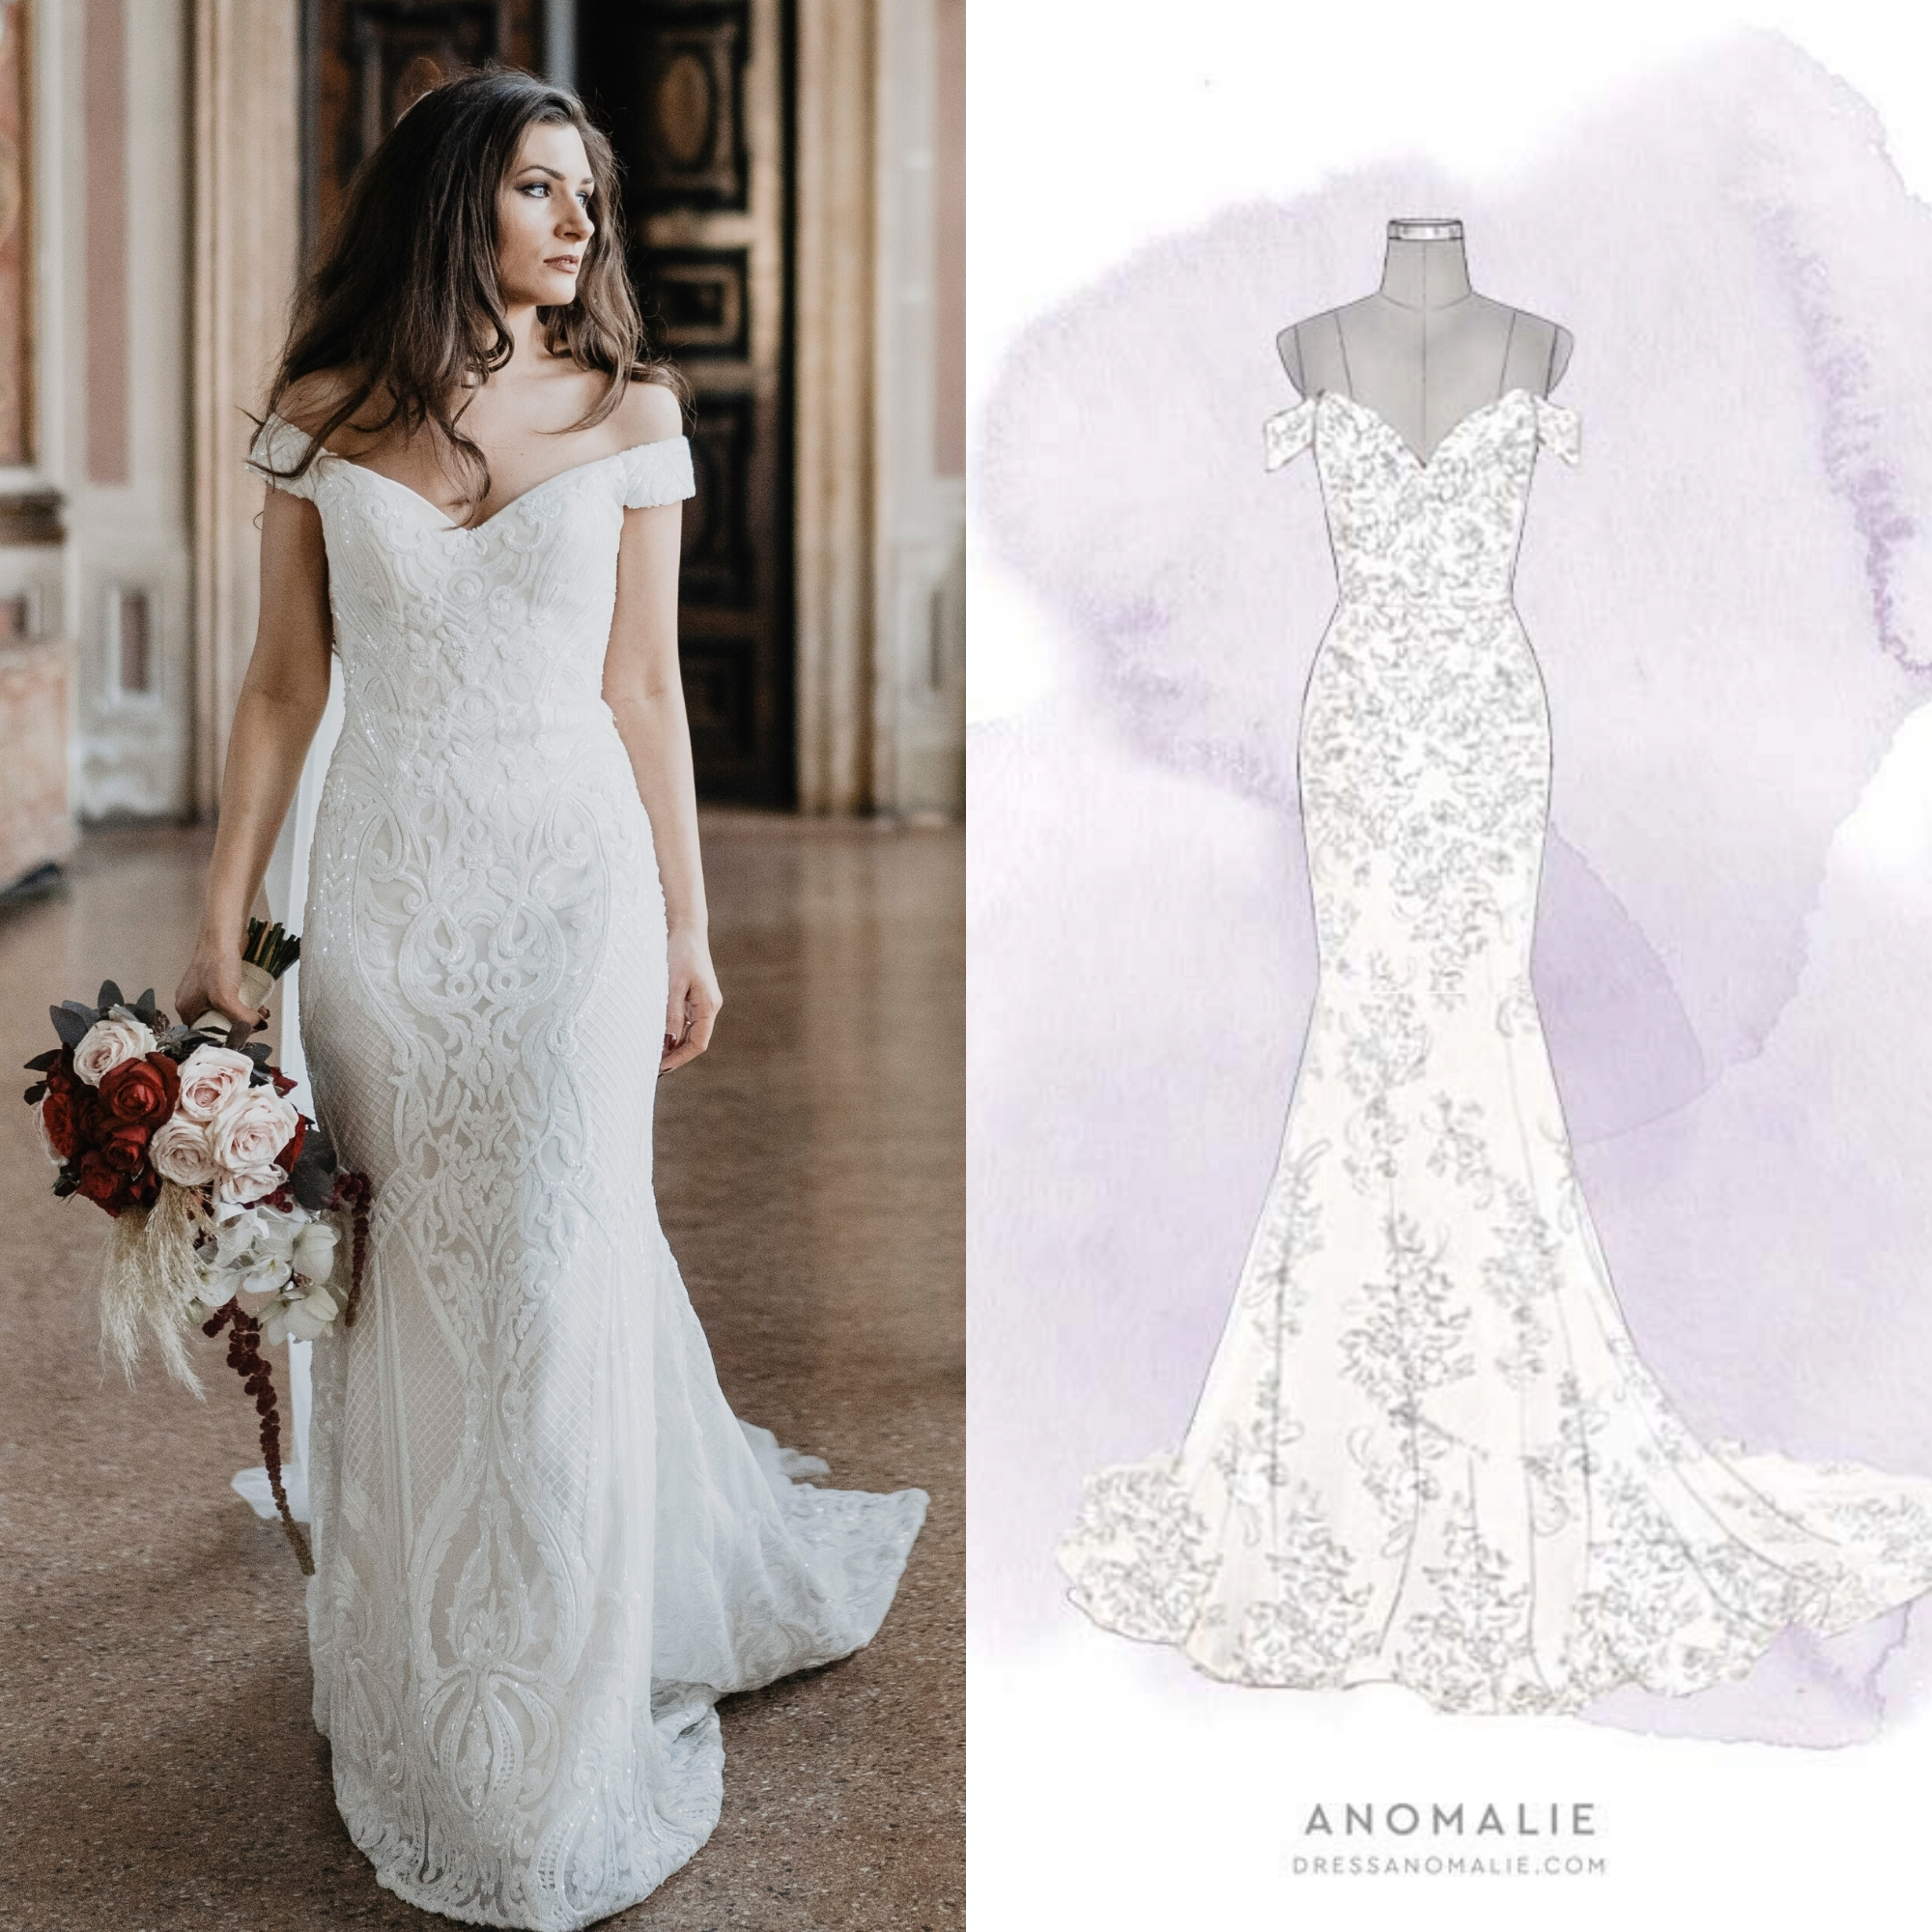 Anomalie Launches Dressbuilder To Visualize And Create The Perfect Wedding Dress From Four Billion Options Business Wire,Affordable Wedding Dresses Online Australia